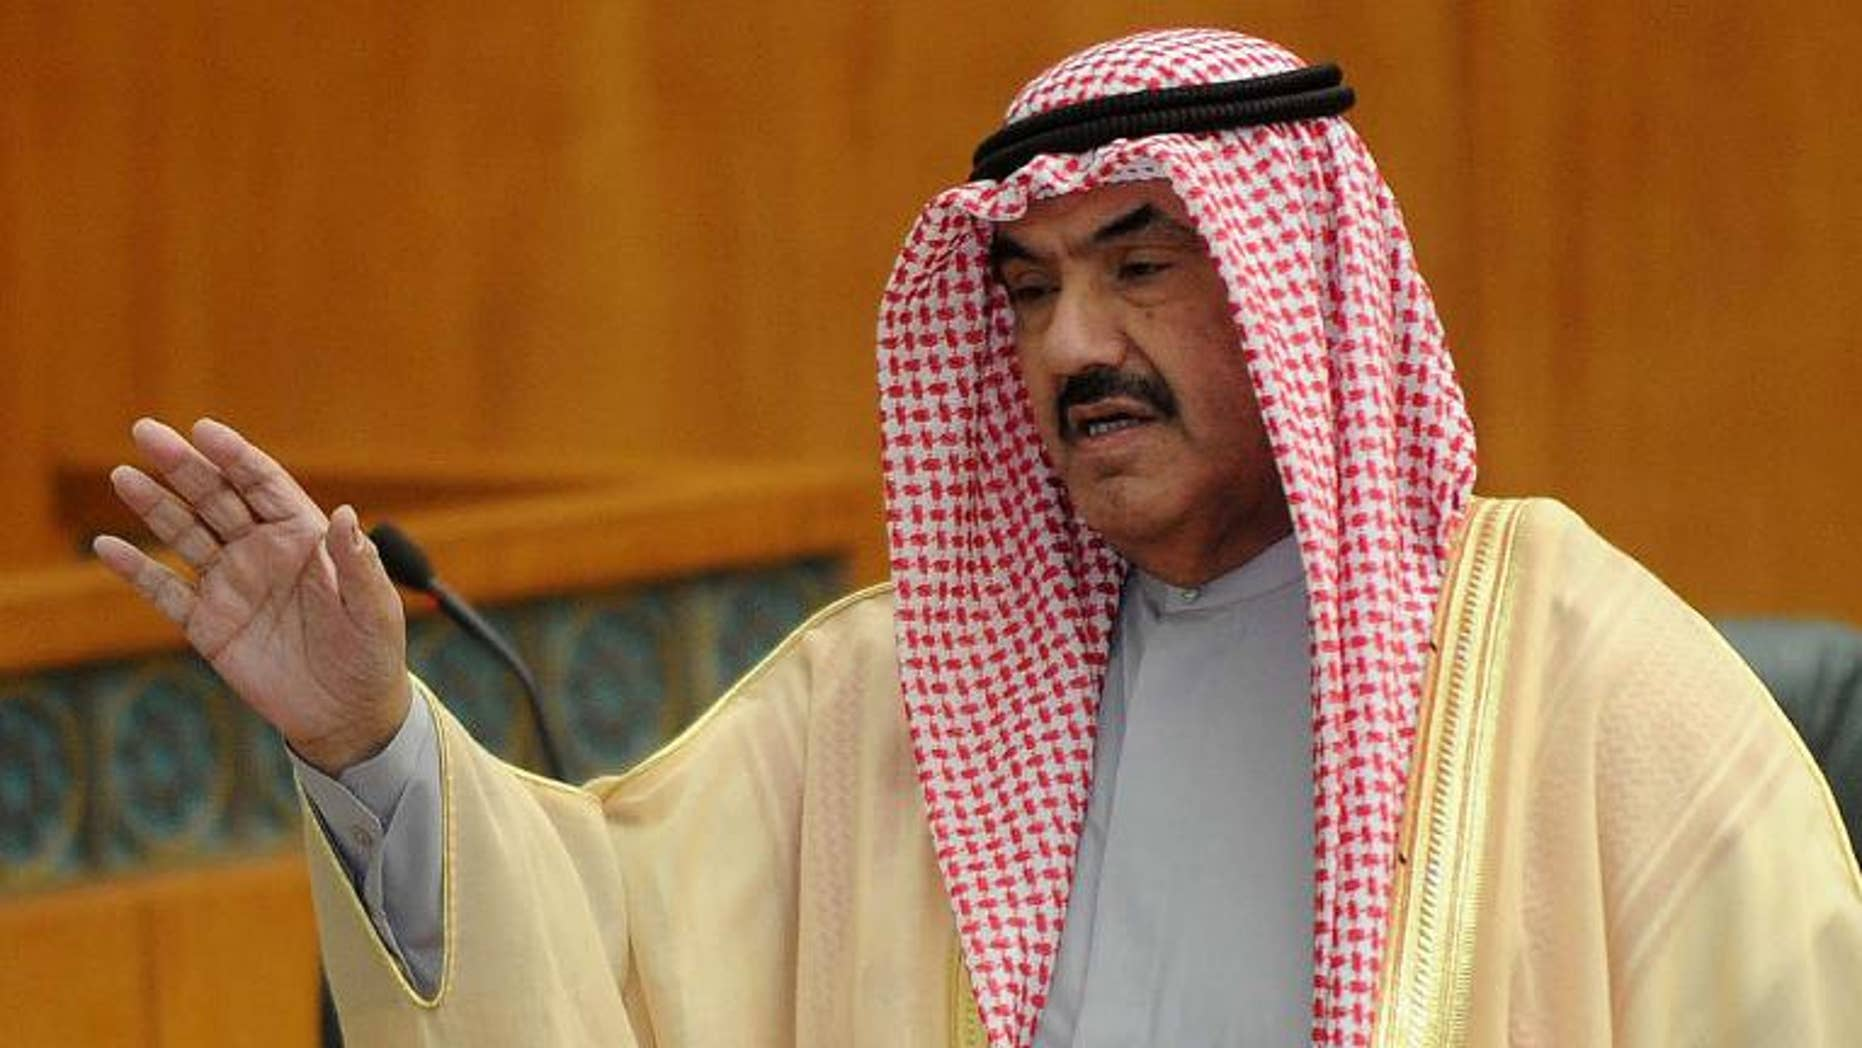 Kuwaiti politician Sheikh Nasser al-Mohammad al-Sabah arrives at the parliament building in Kuwait City, on June 8, 2011